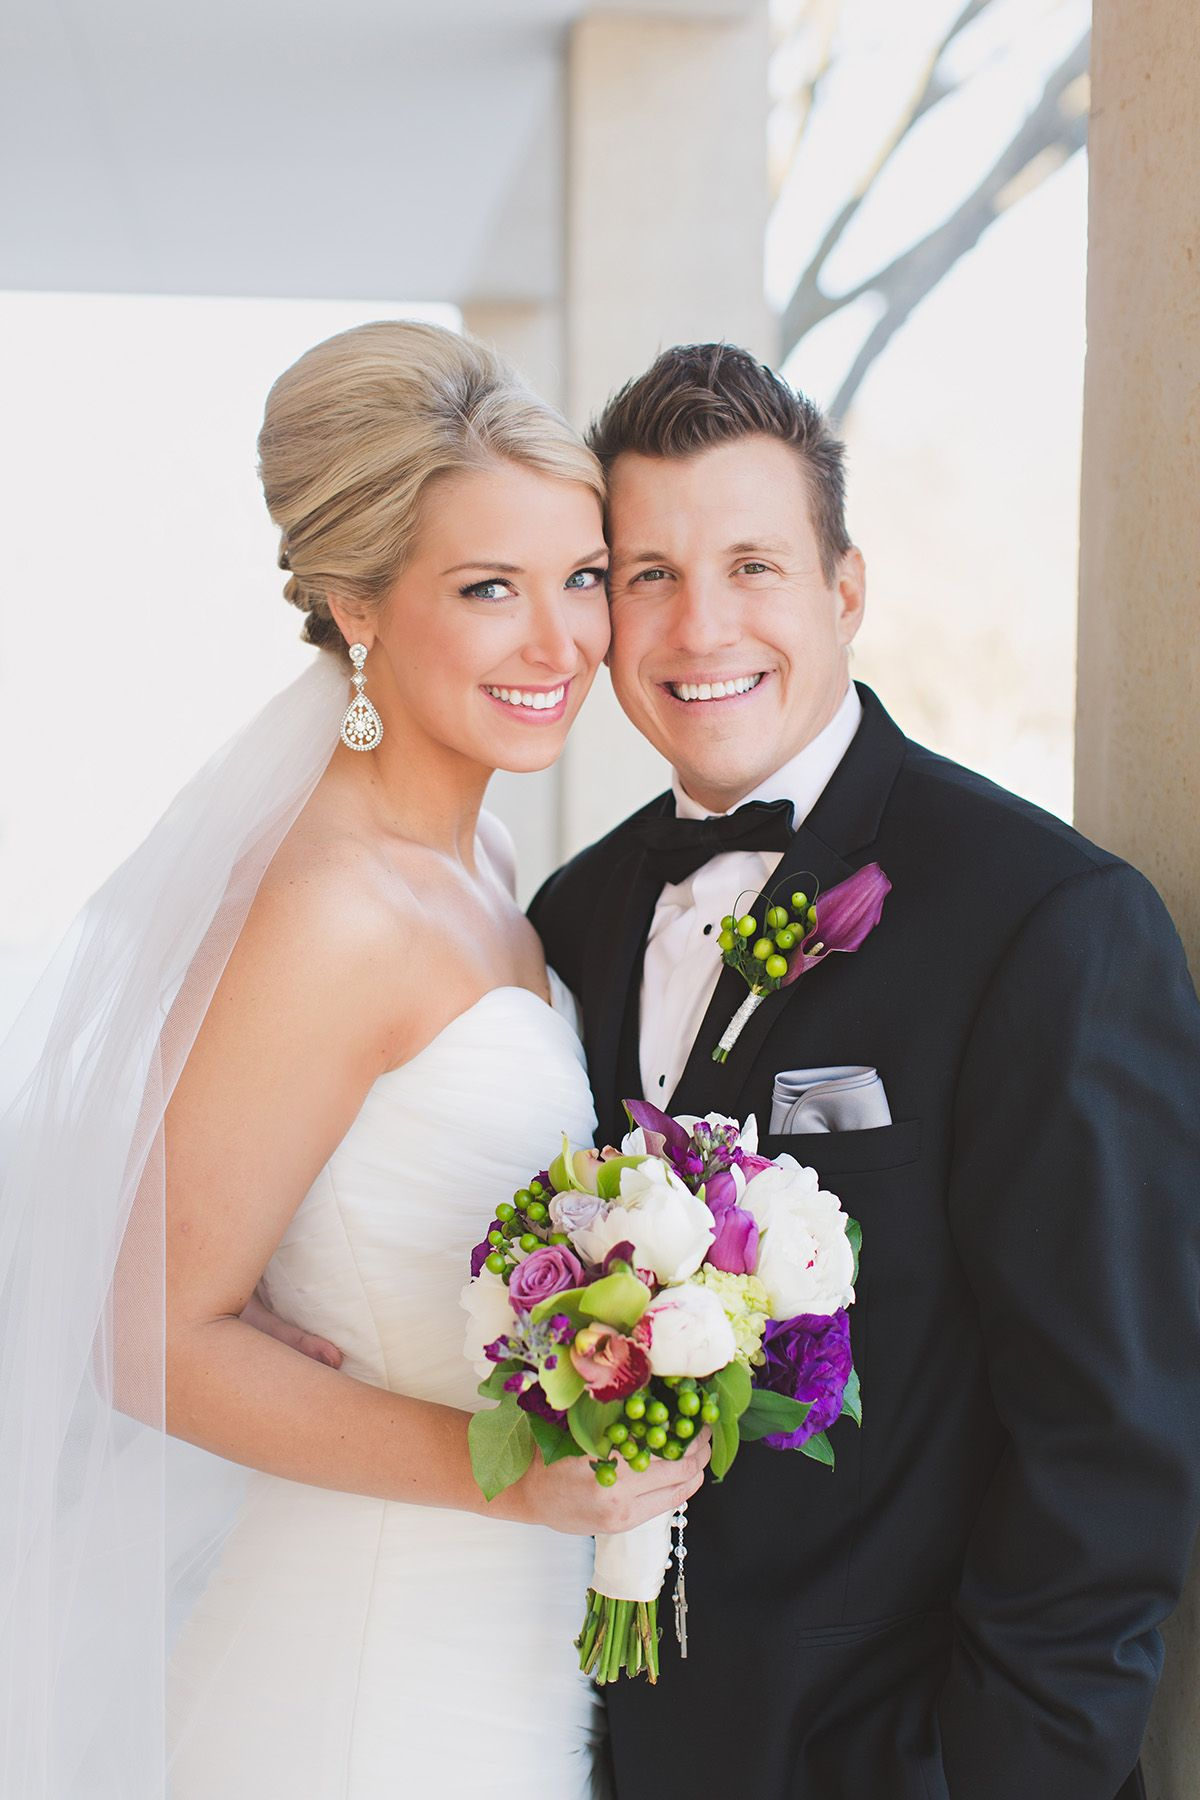 Pin on Envision Weddings 2013